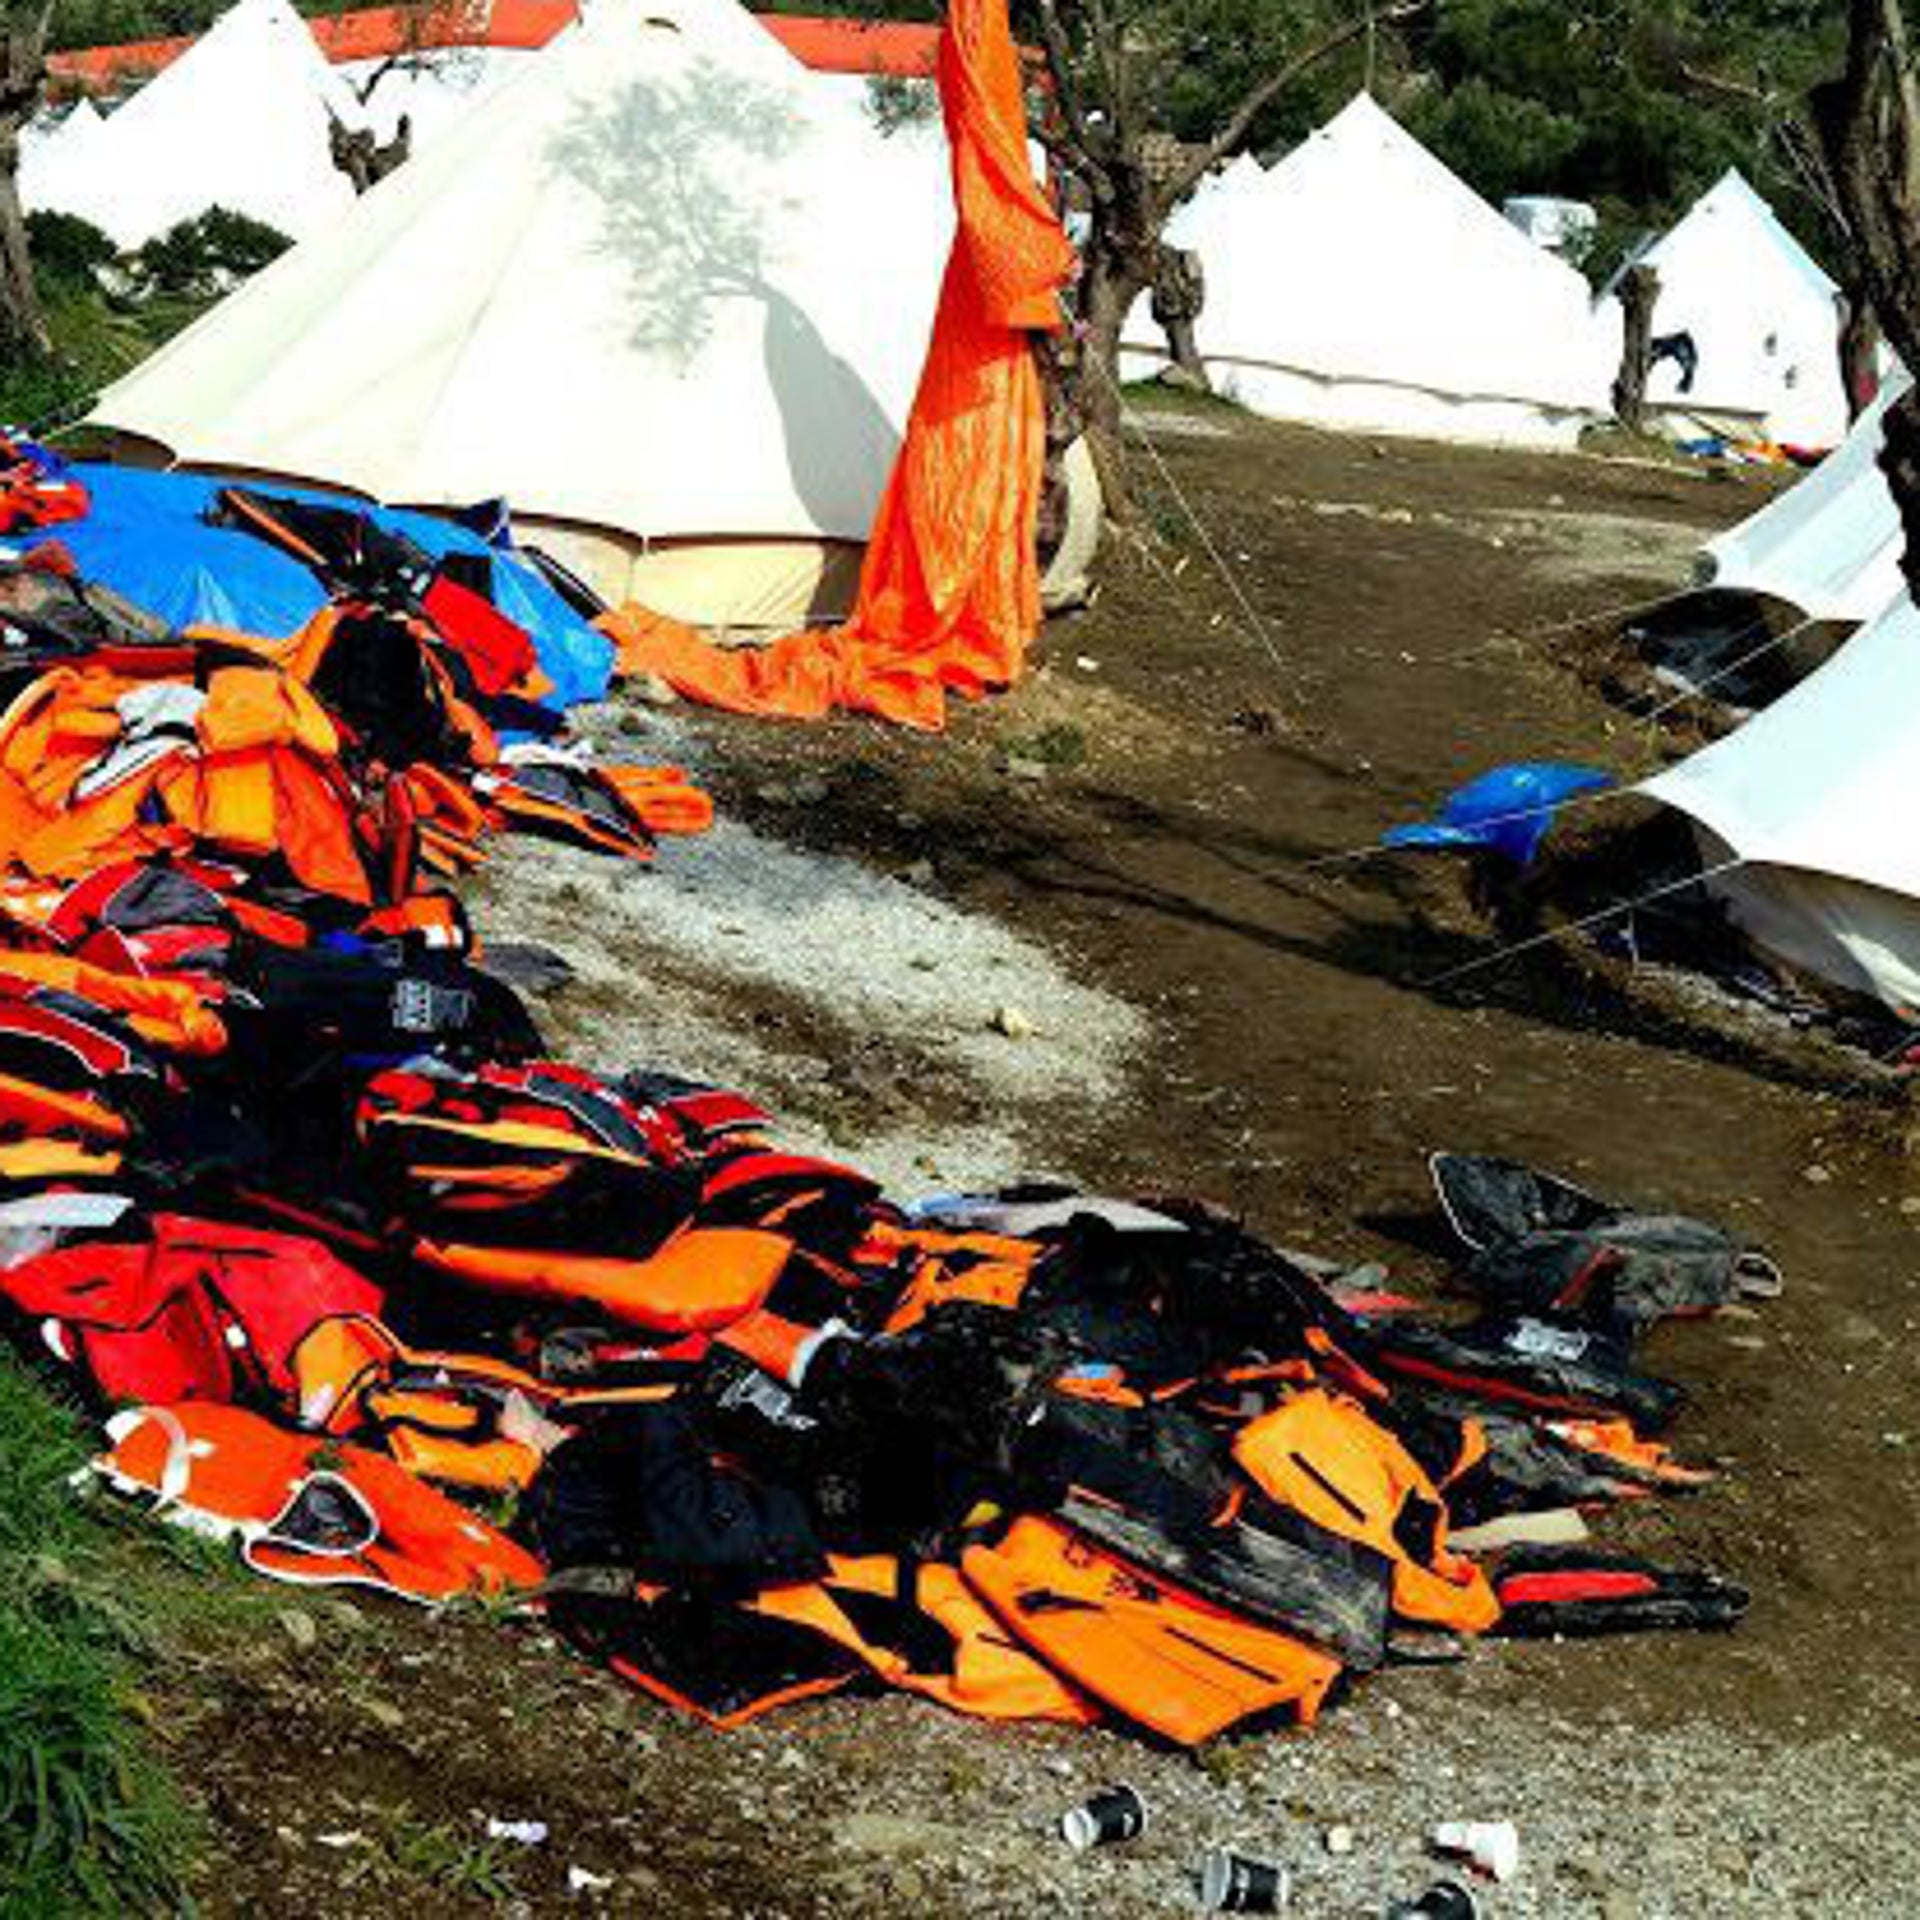 Life vests strewn at the refugee camp in Lesbos, Greece as thousands have shuffled their way through the Greek island.